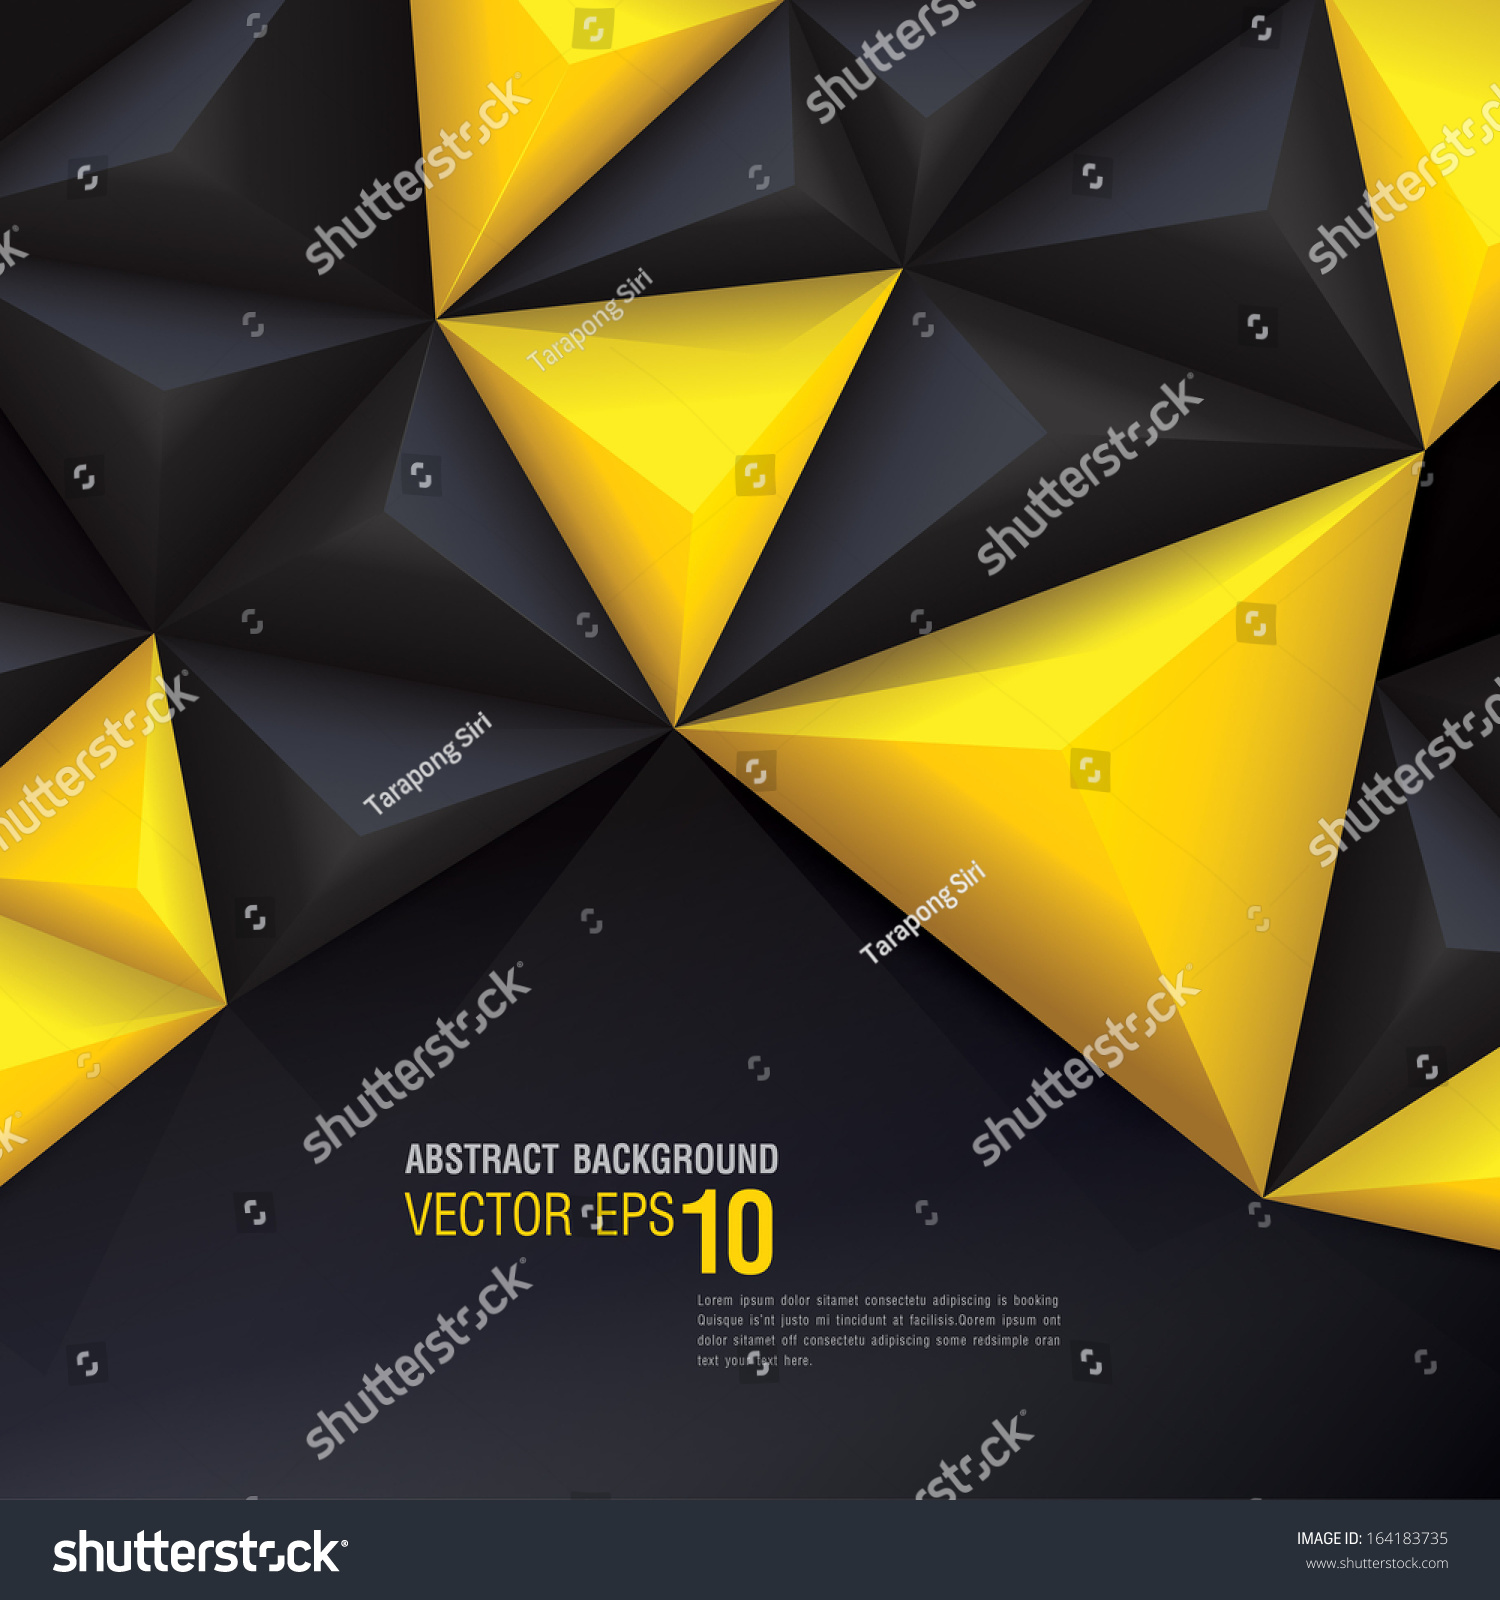 Book With Black And Yellow Cover : Yellow black vector geometric background can stock